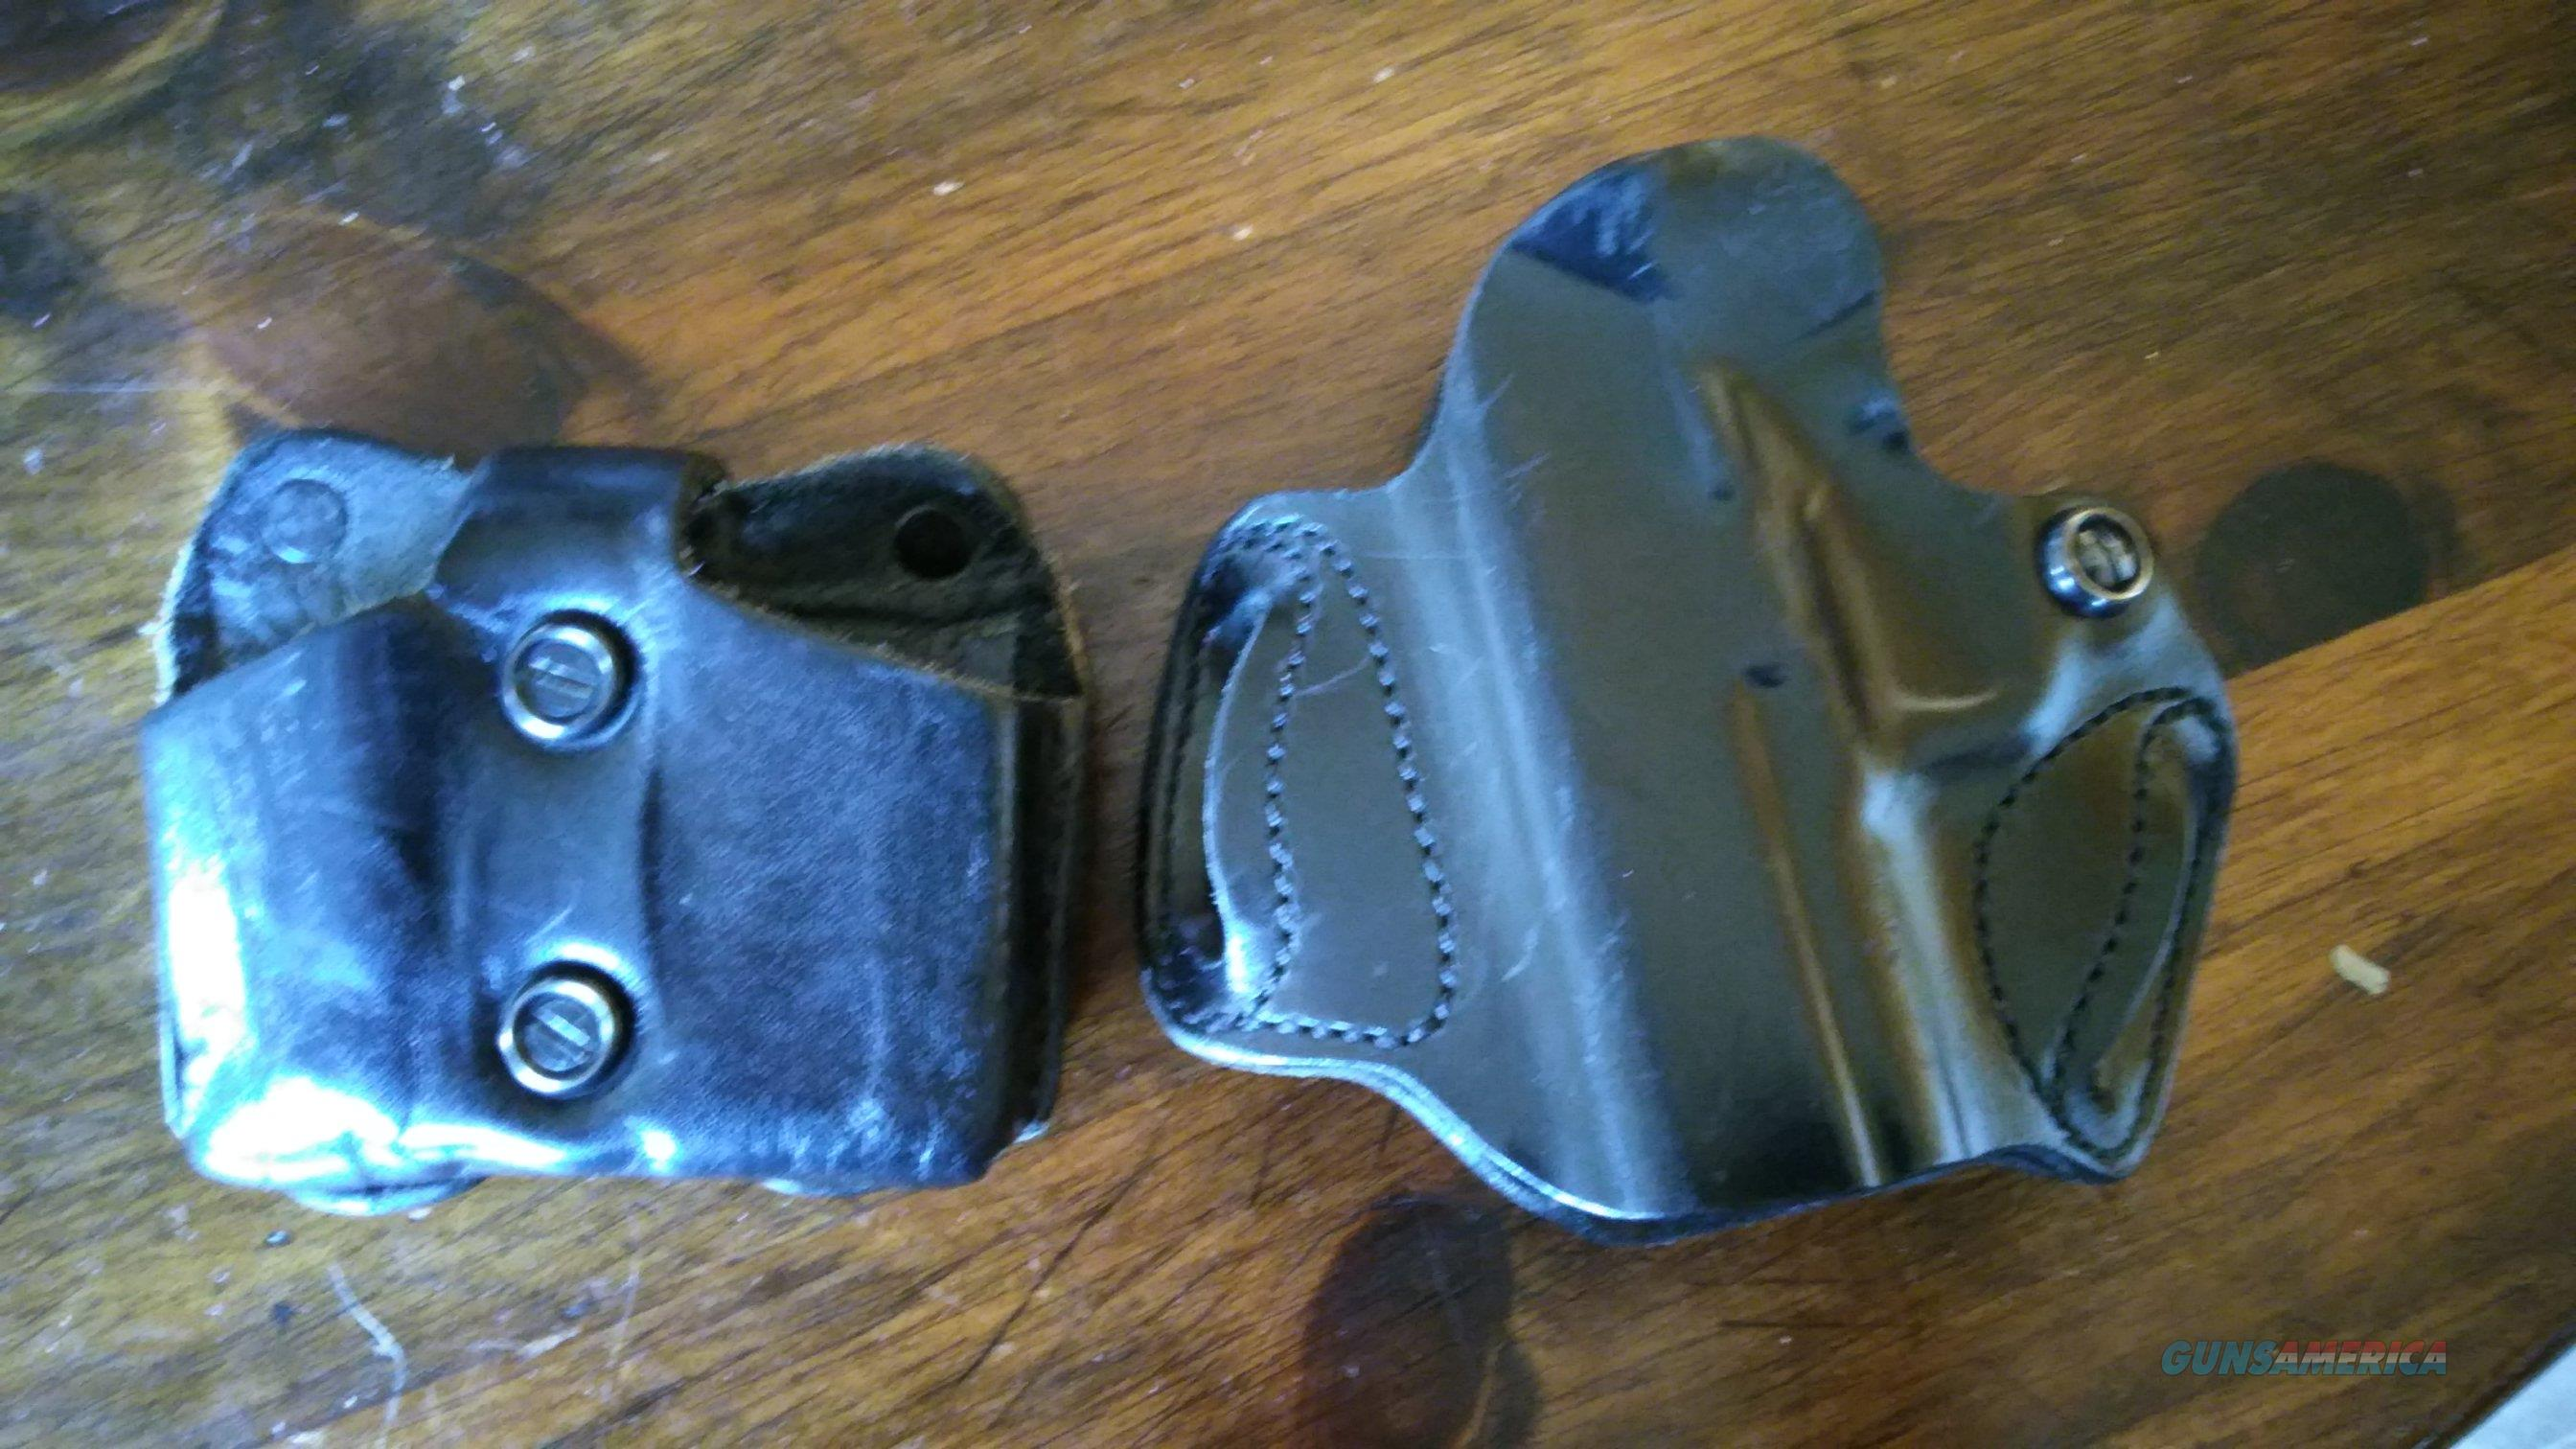 Desantis lh 1911 holster and mag pouch  Non-Guns > Holsters and Gunleather > Concealed Carry